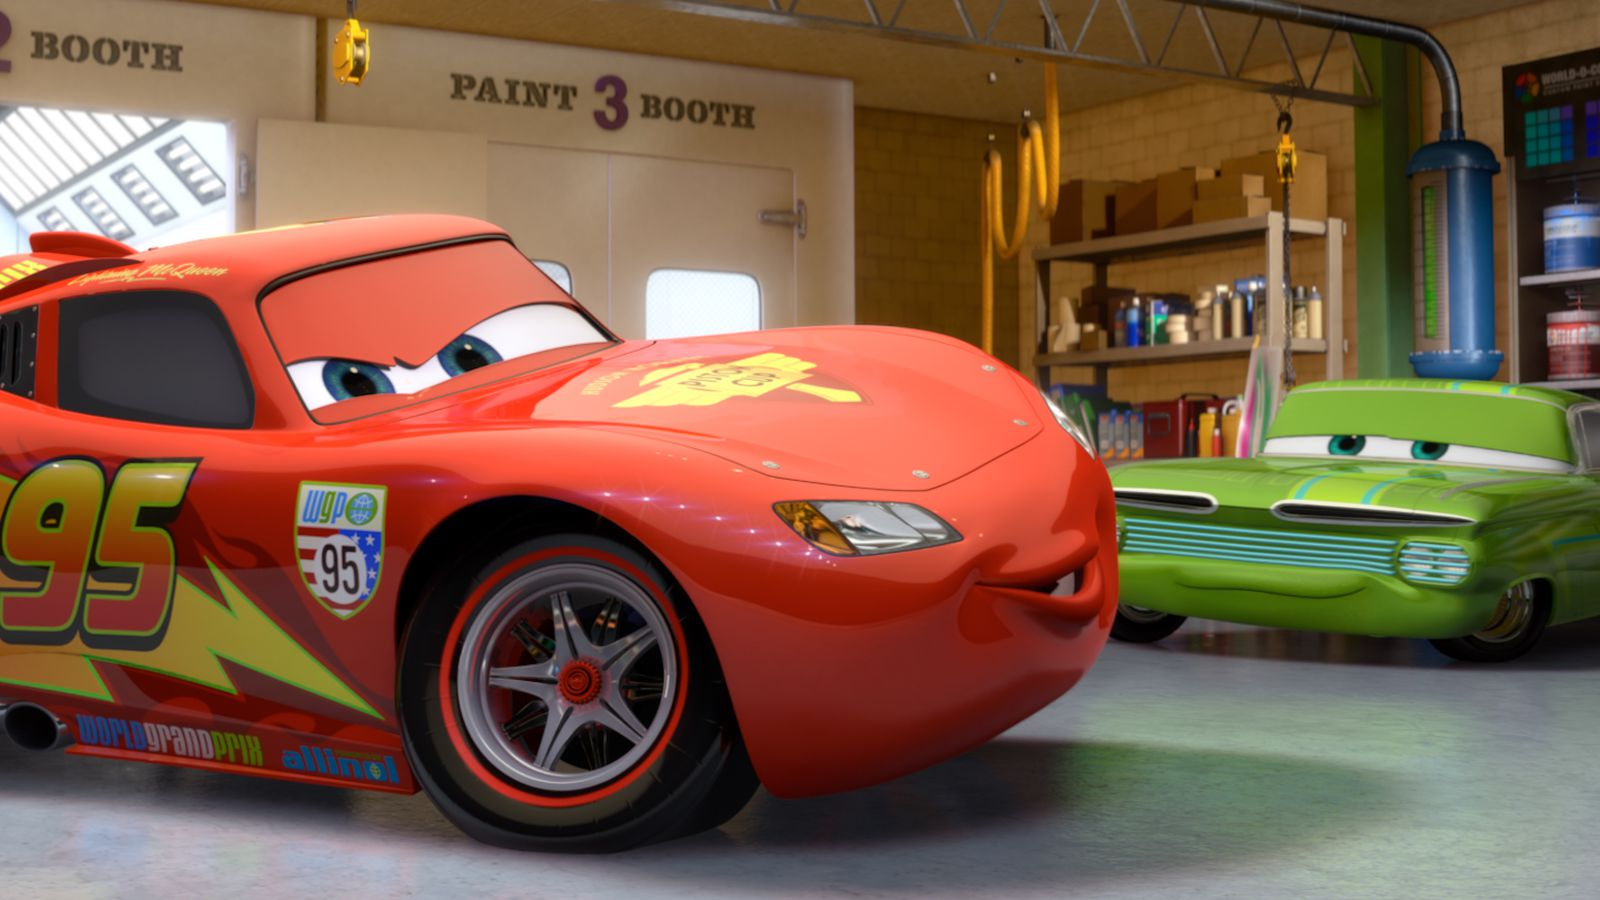 cars 3 extended trailer further explains what happens to lightning mcqueen polygon